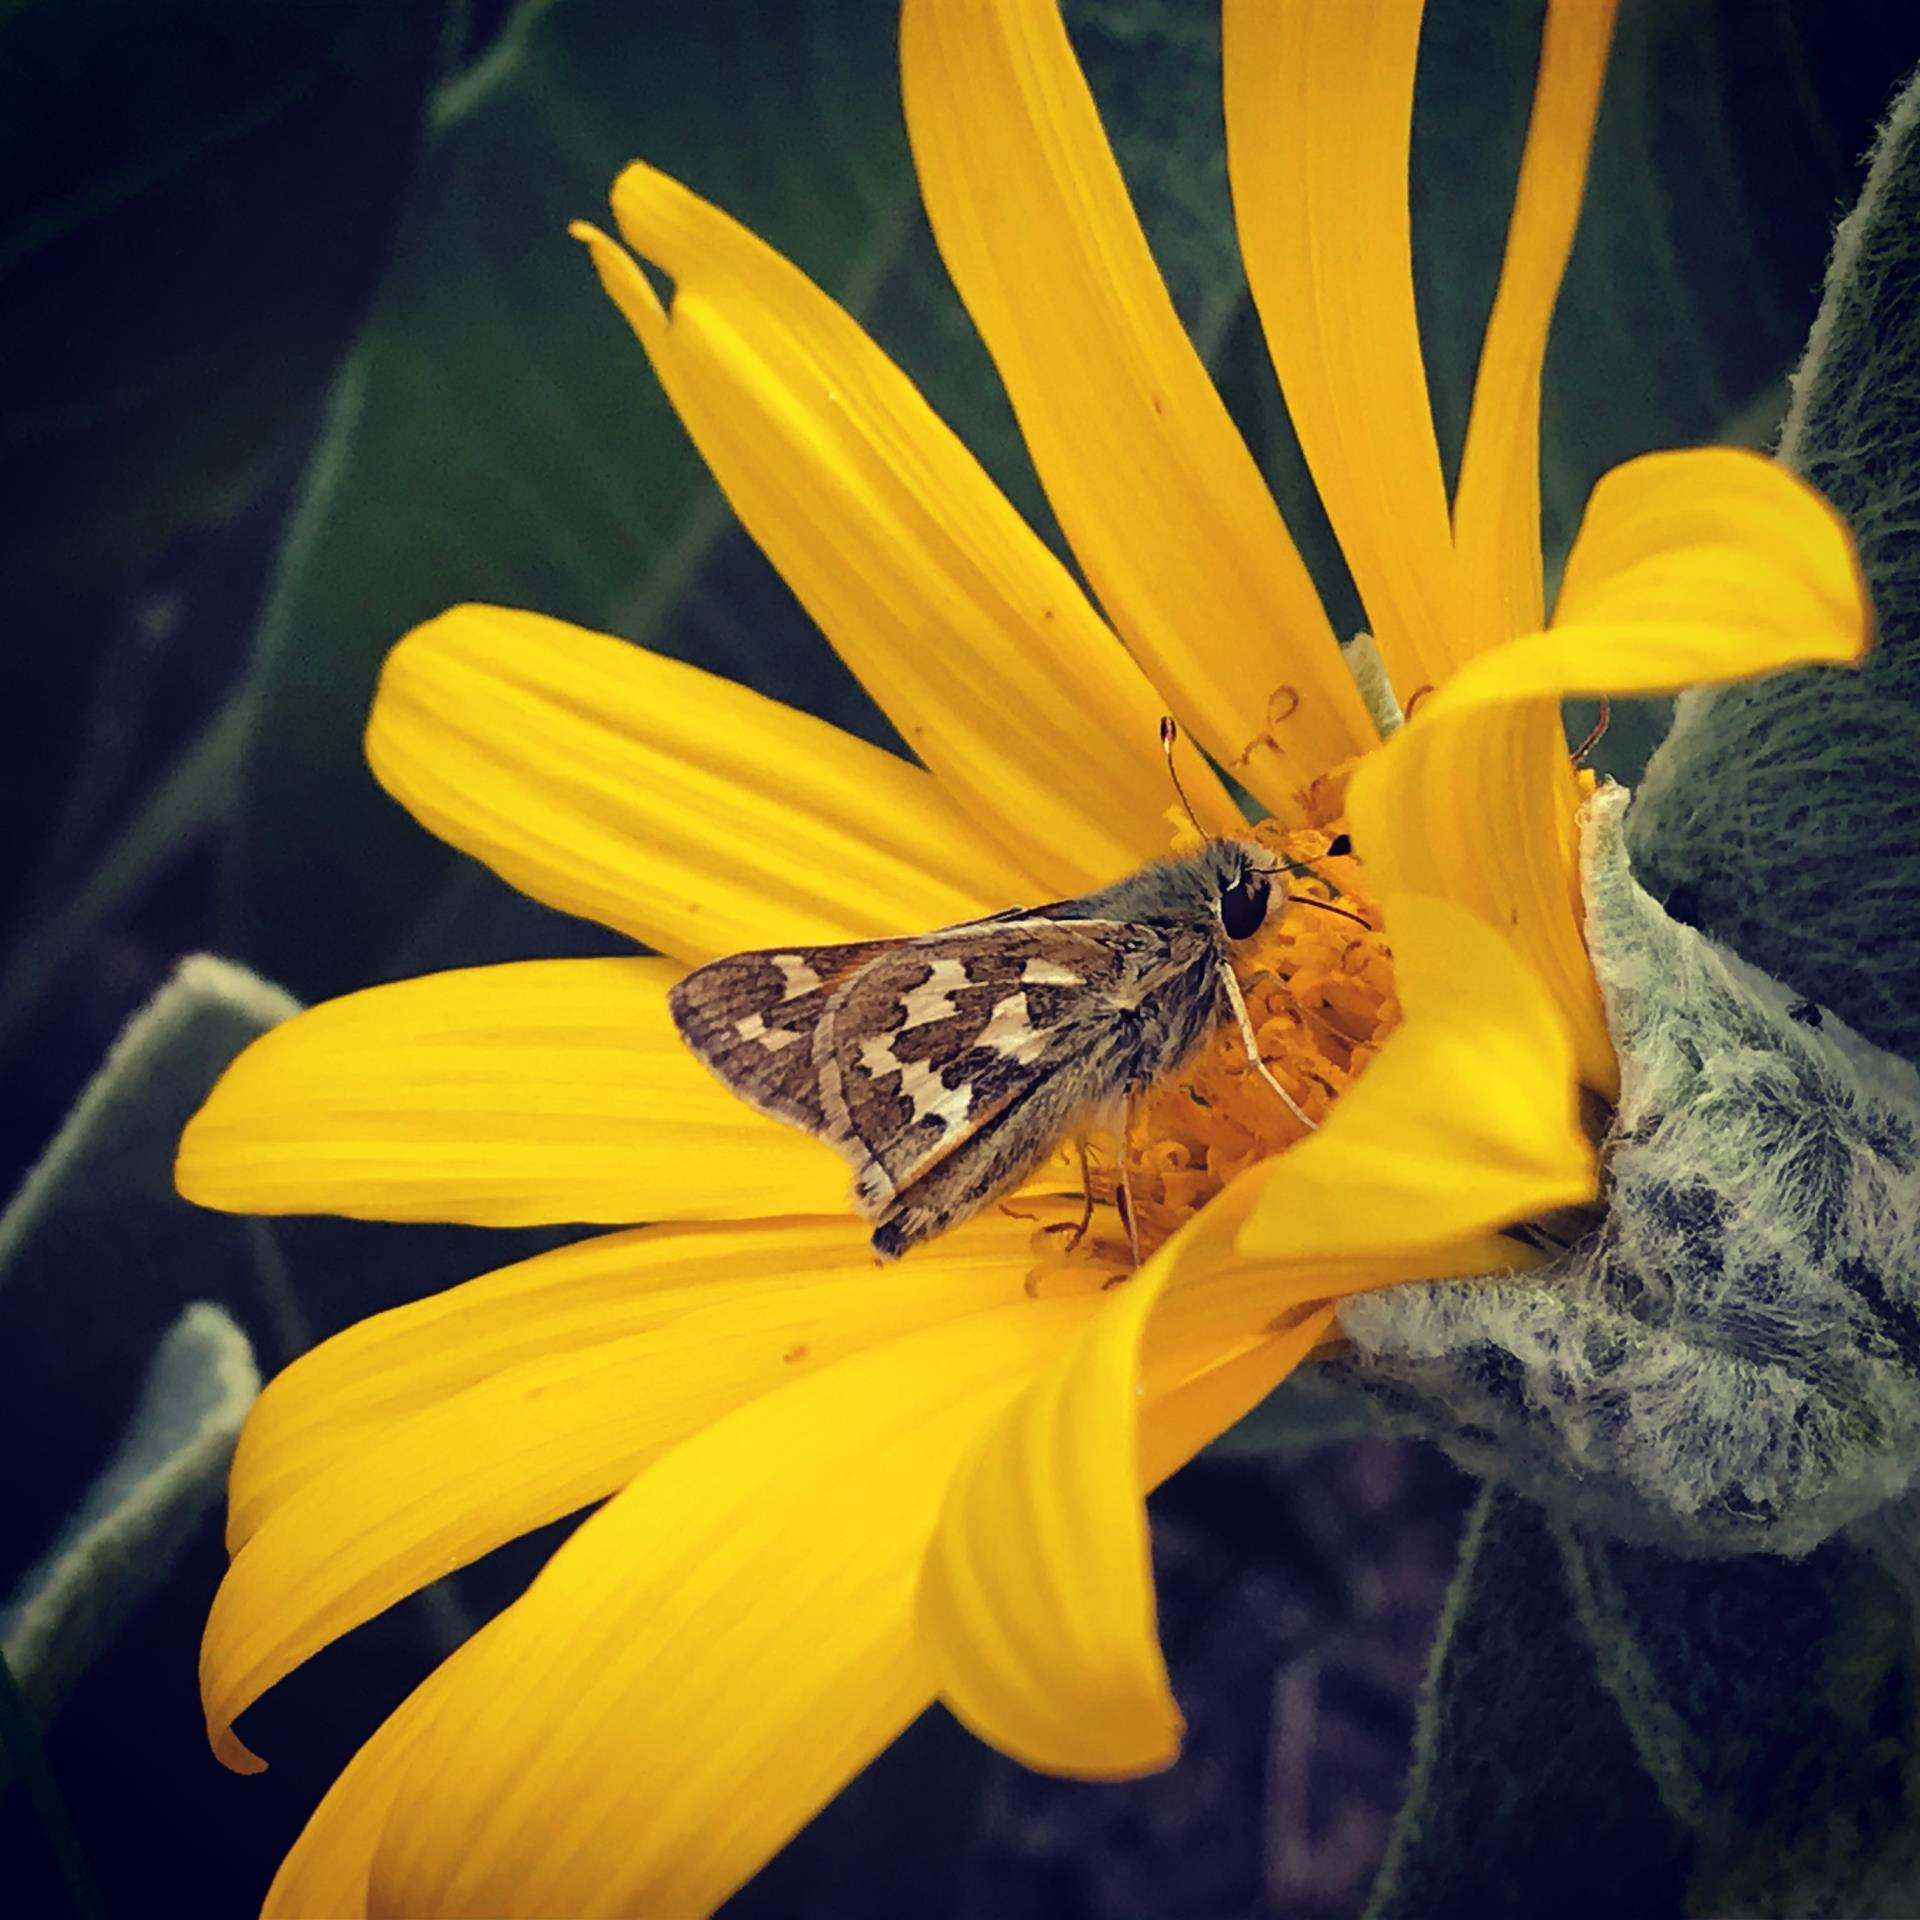 Grass Skipper butterfly foraging on a native Mule's Ears, Wyethia mollis flower.